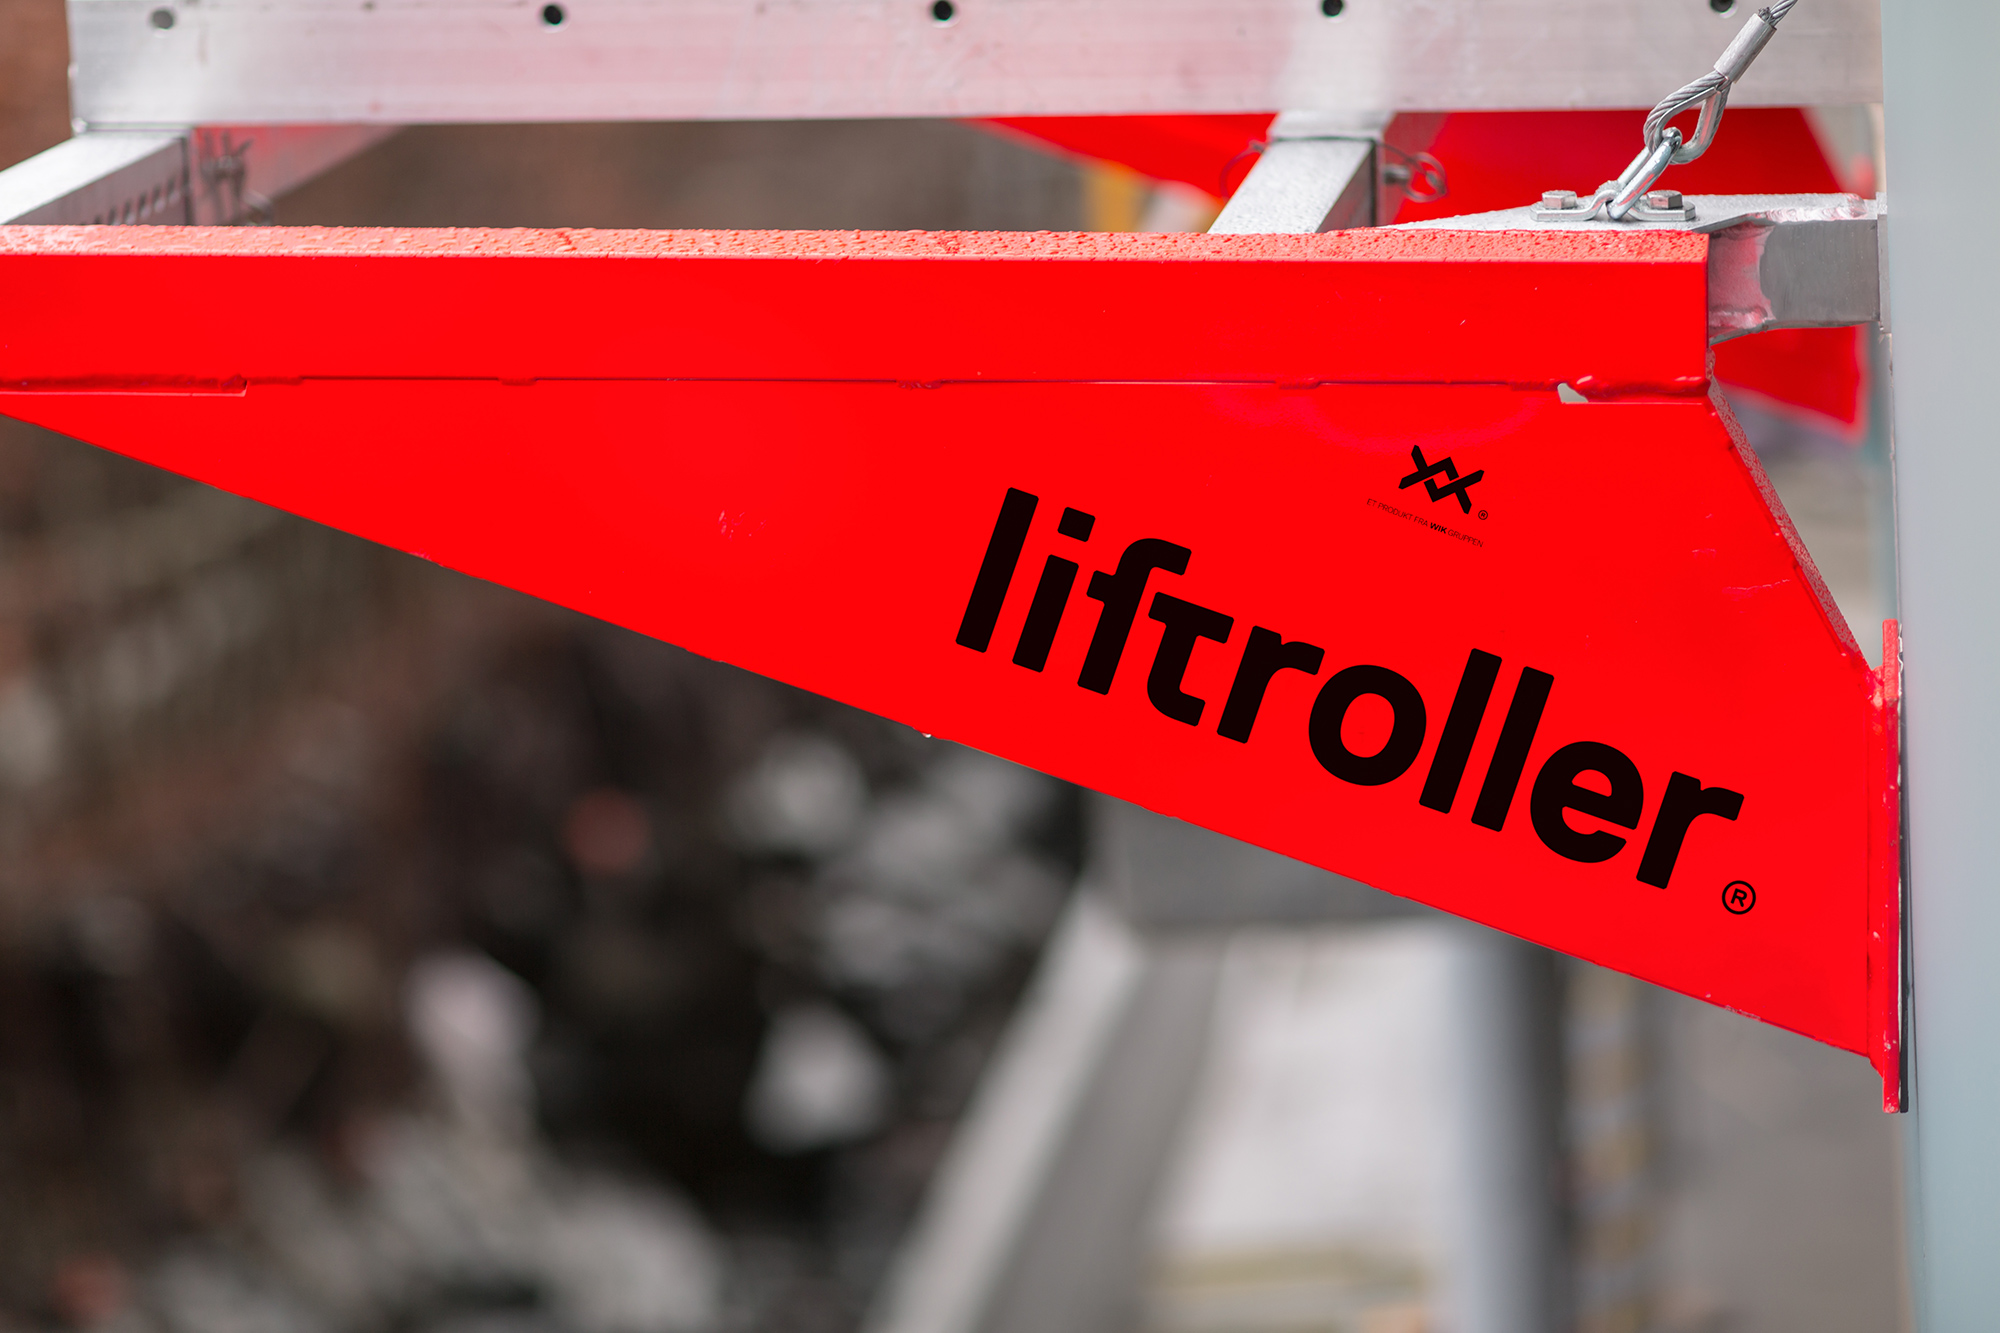 'Liftroller® named invention of the year'